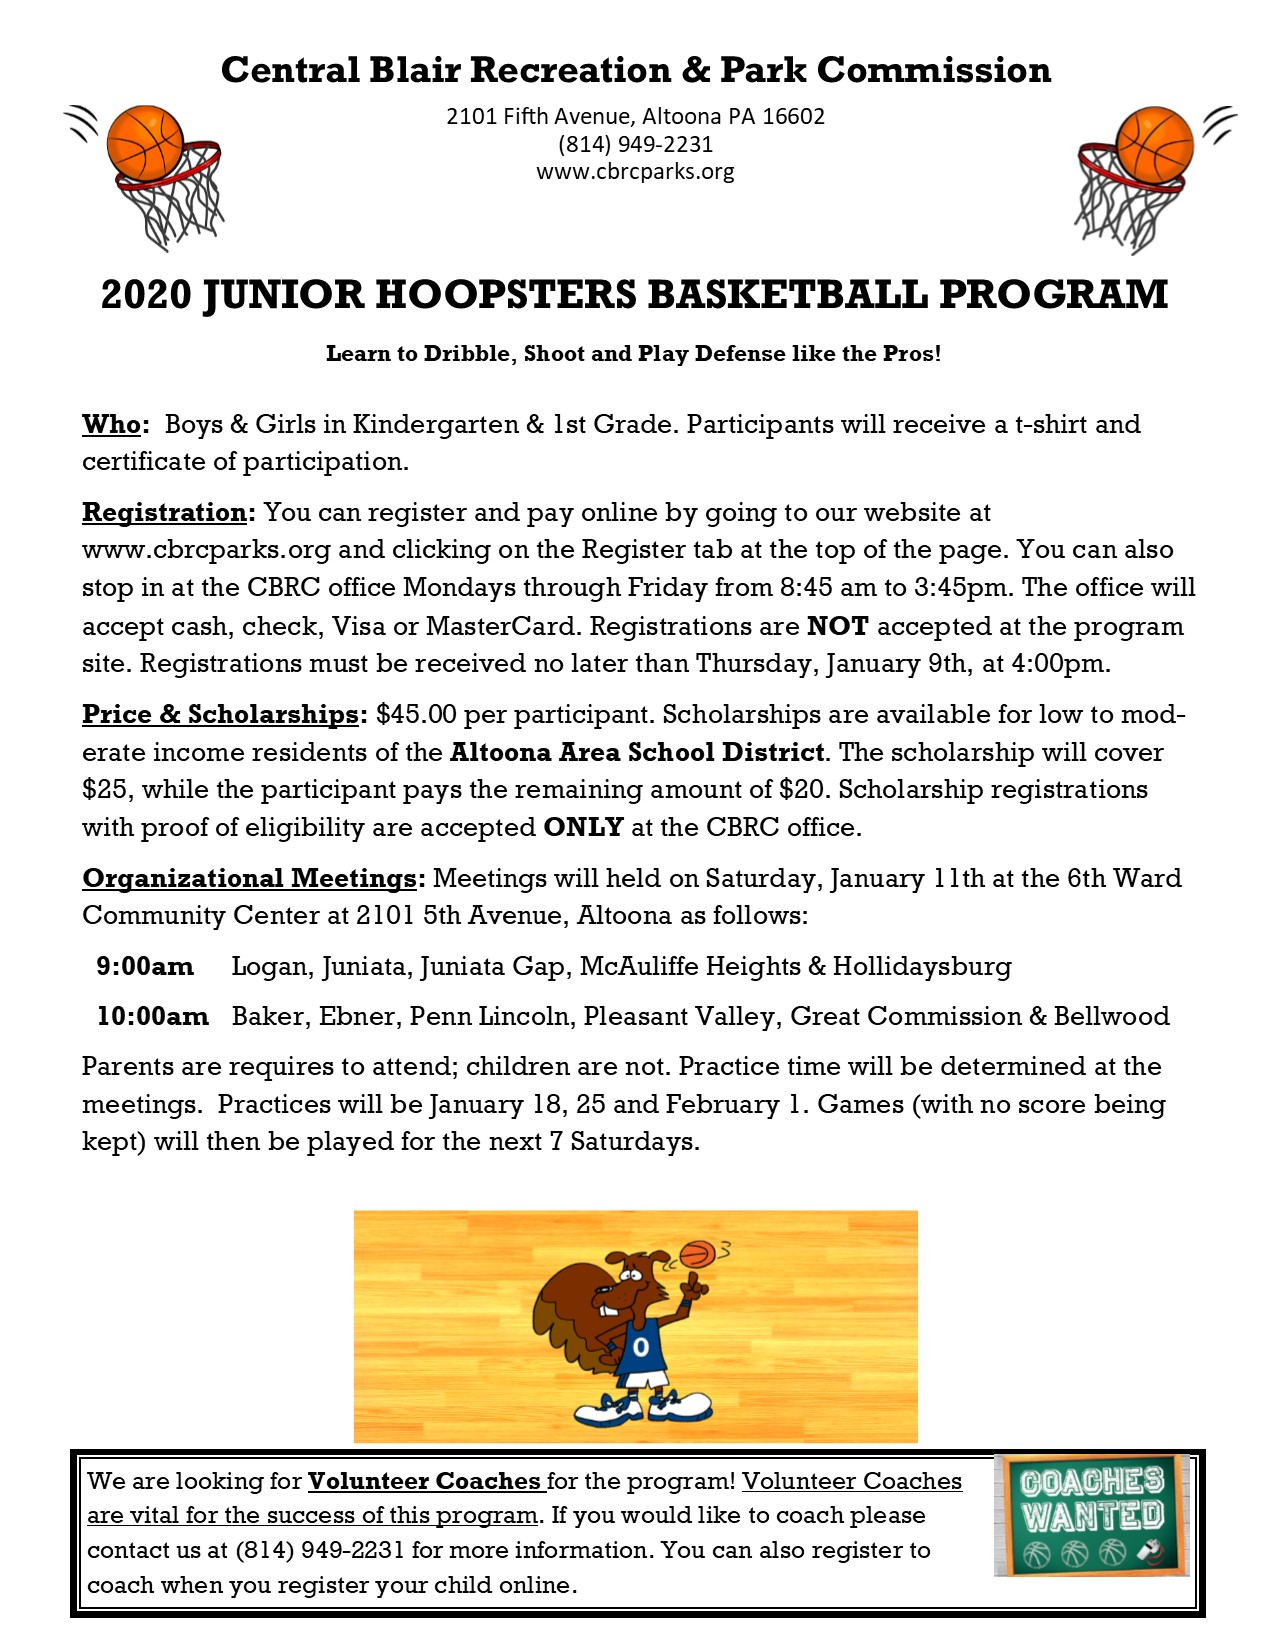 2020-Jr.-Hoopster-and-Instructional-Basketball